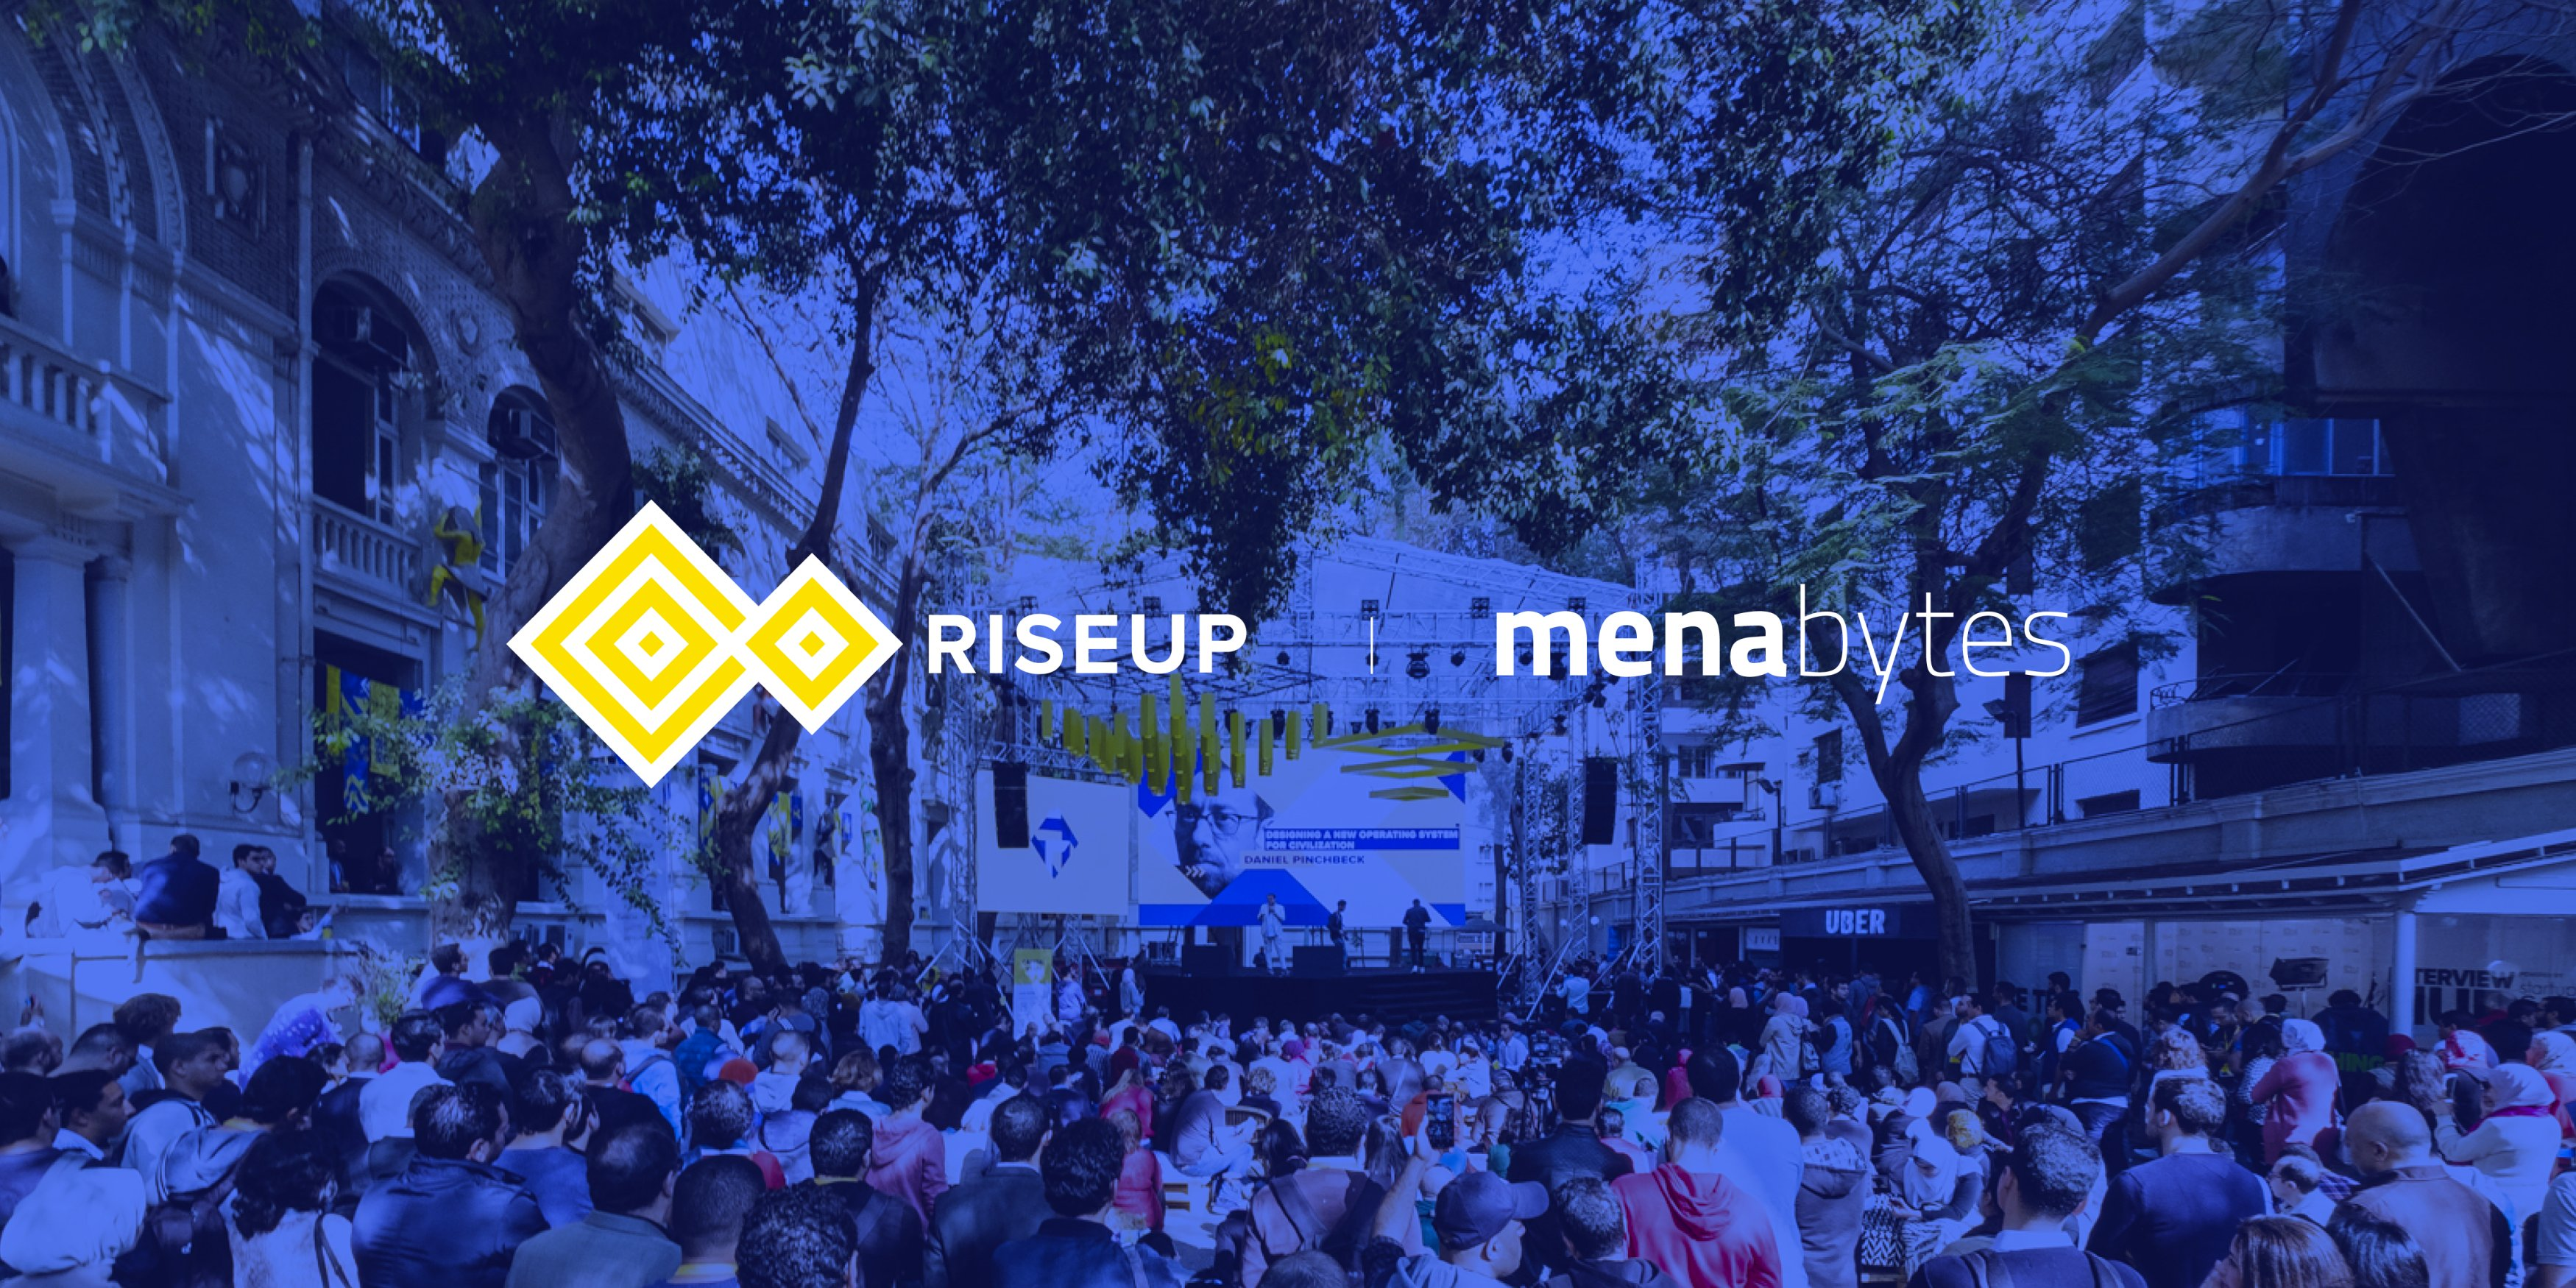 RISEUP ACQUIRES MENABYTES, ONLINE STARTUP AND TECHNOLOGY MEDIA PLATFORM